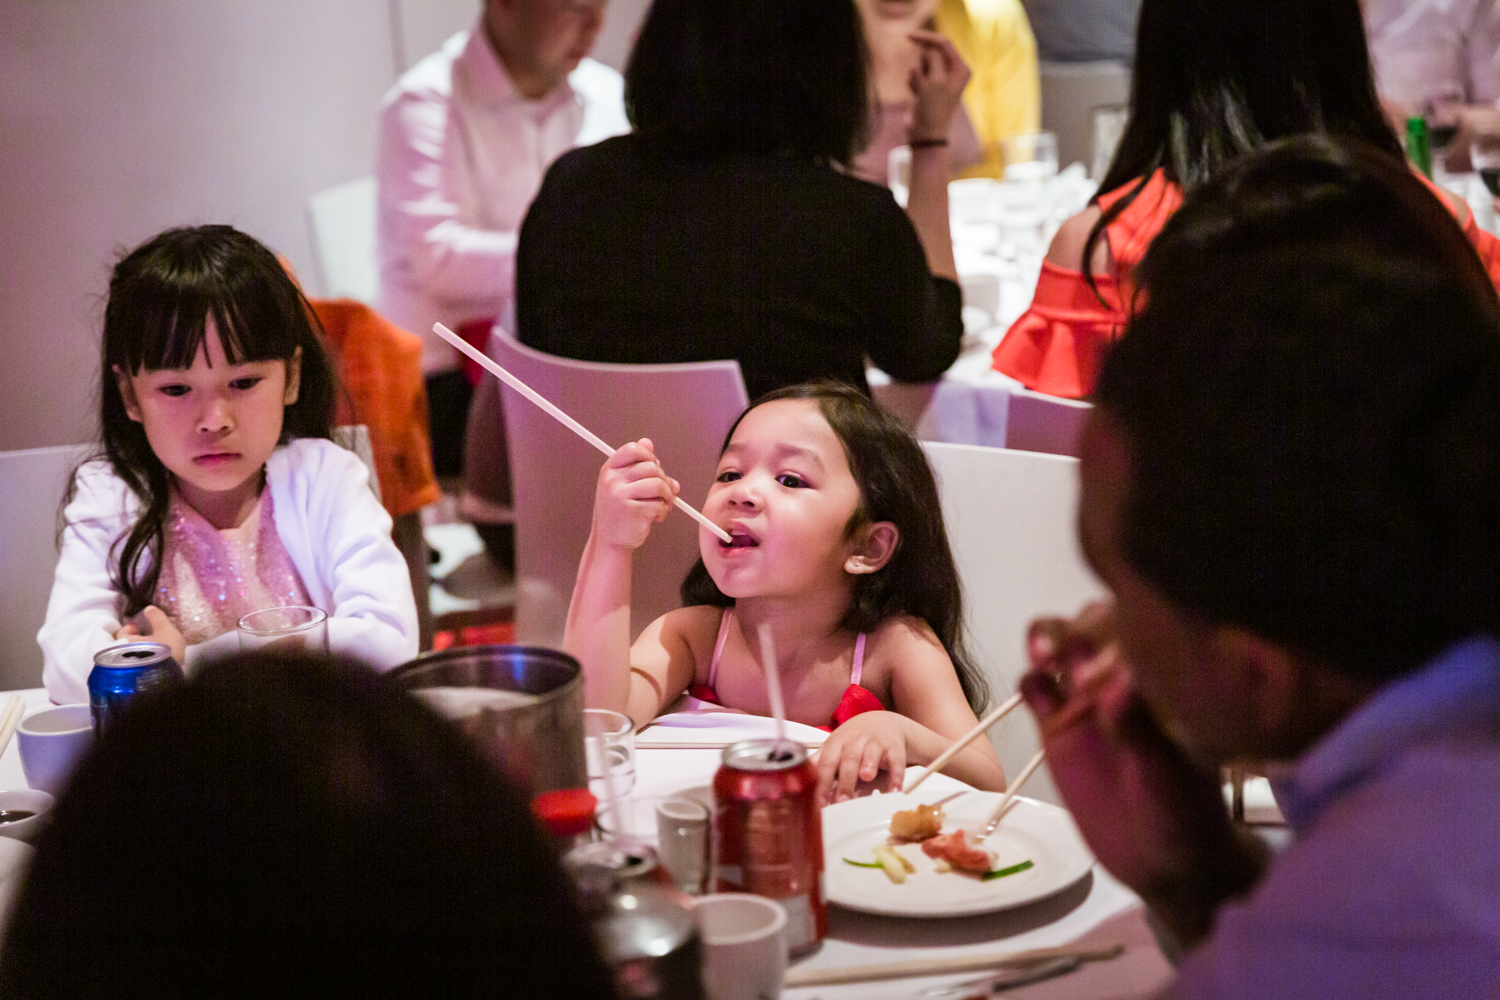 Little girl eating with chopsticks at a Chinatown rehearsal dinner